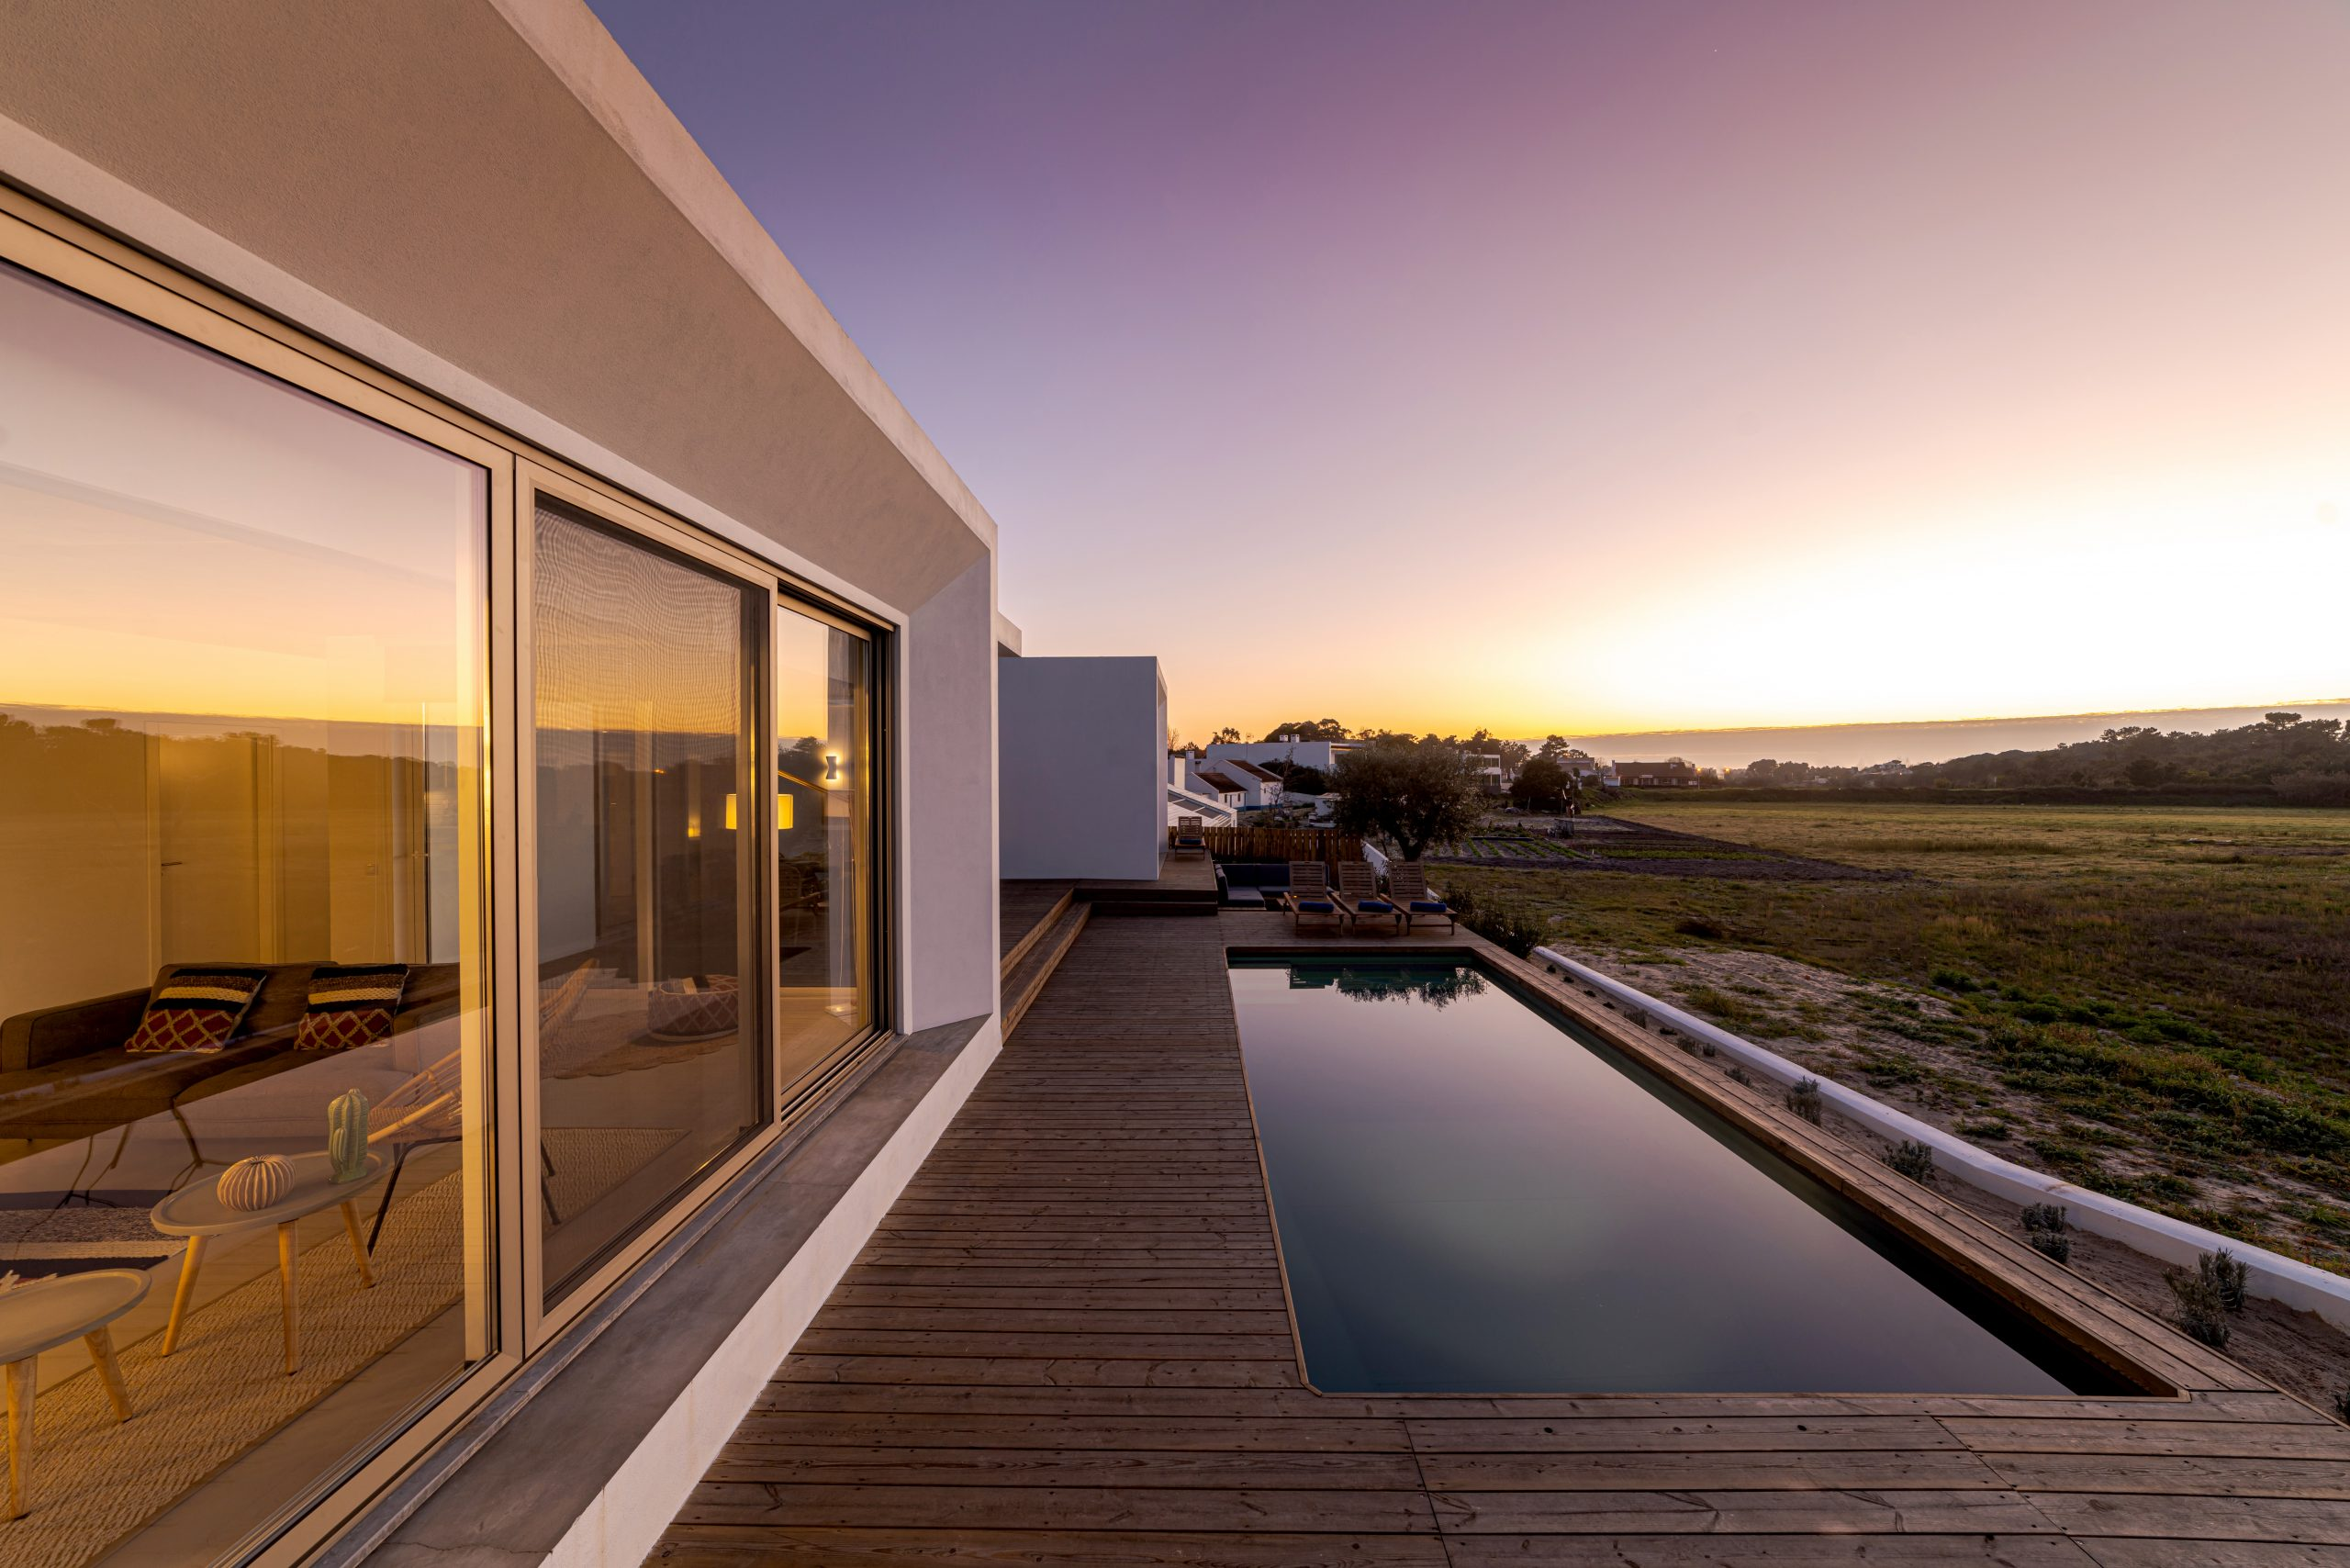 modern villa with pool and deck VBWZZW7 scaled 1